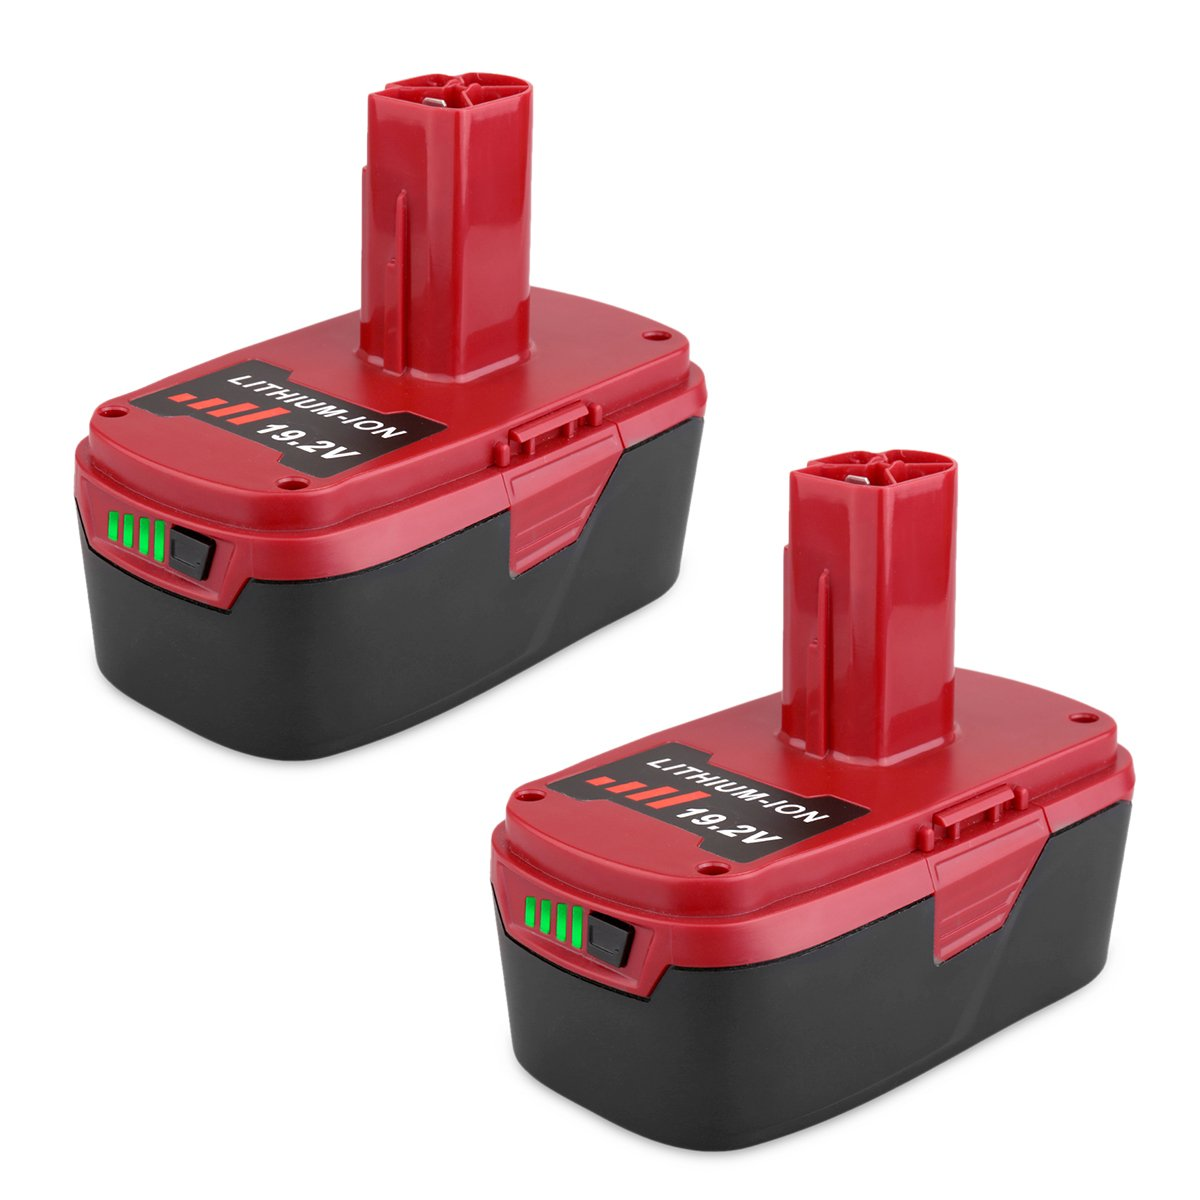 Biswaye 2Pack 4.0Ah 19.2V C3 XCP Lithium Ion Battery Replacement for 19.2-Volt Craftsman C3 Lithium Battery 130211004 11375 11045 130279005